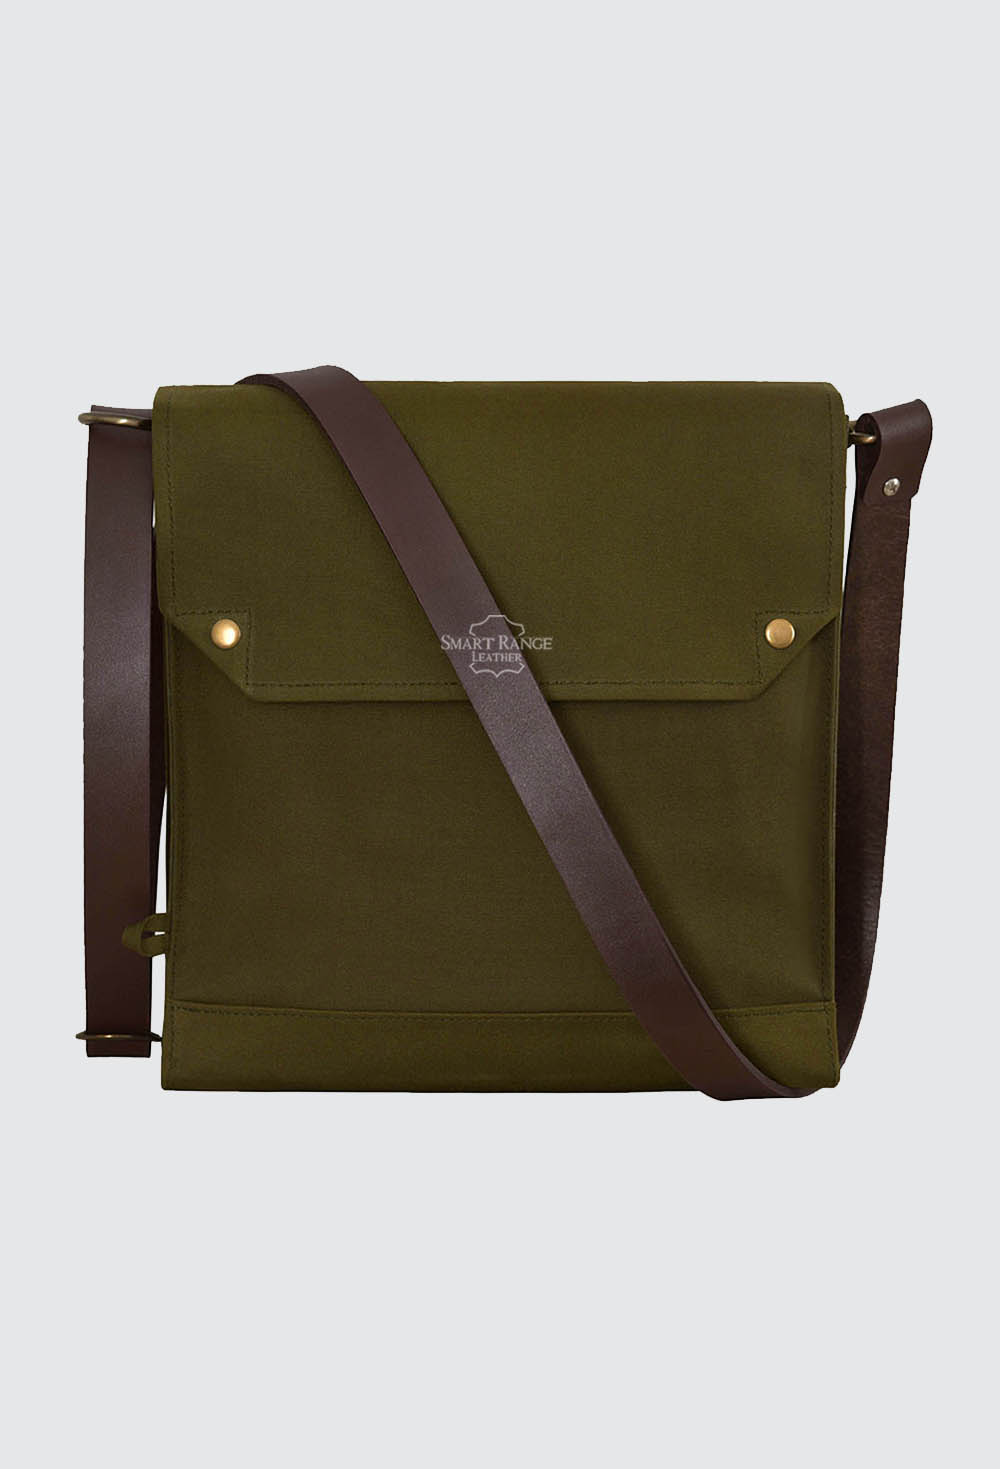 indy bag, Indy bags wholesale